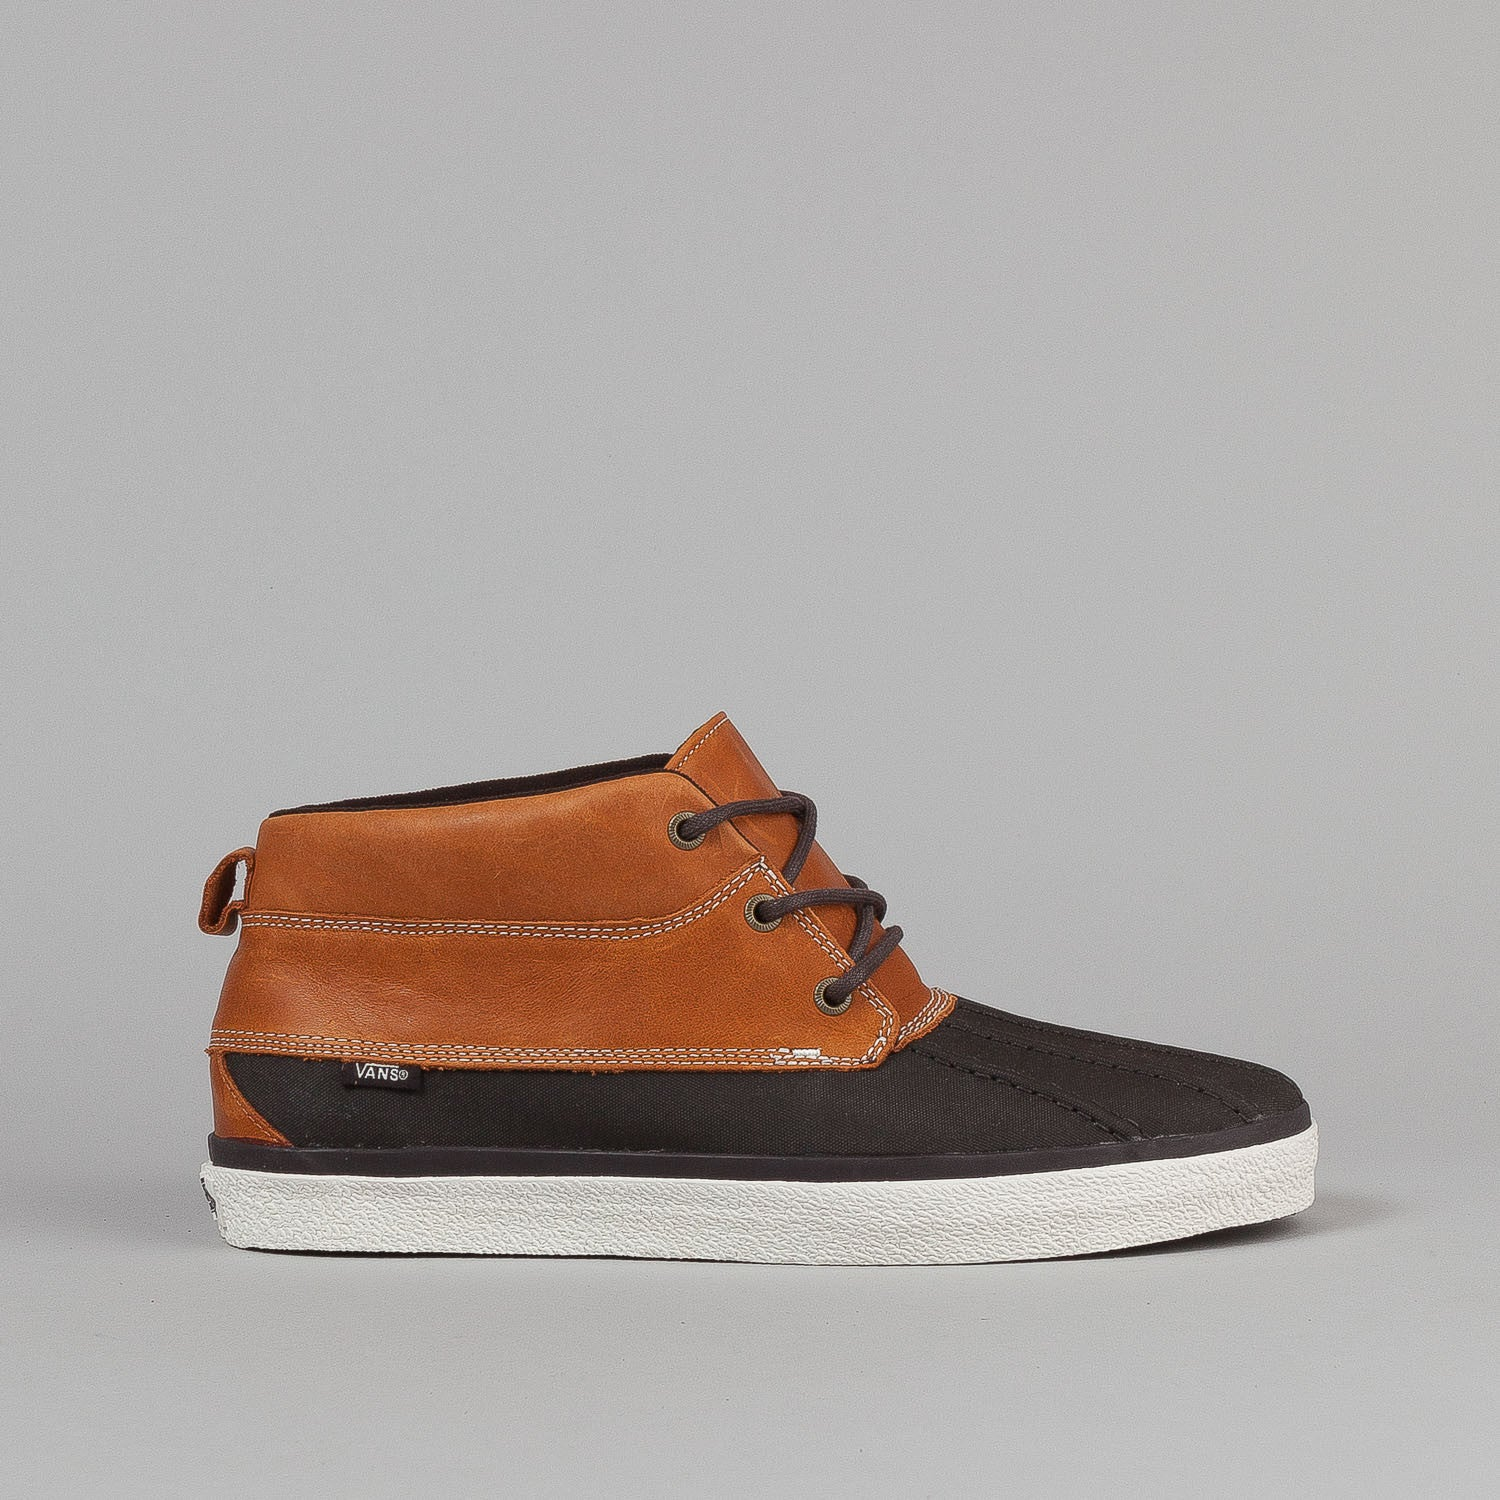 Vans Chukka Del Pato CA Shoes